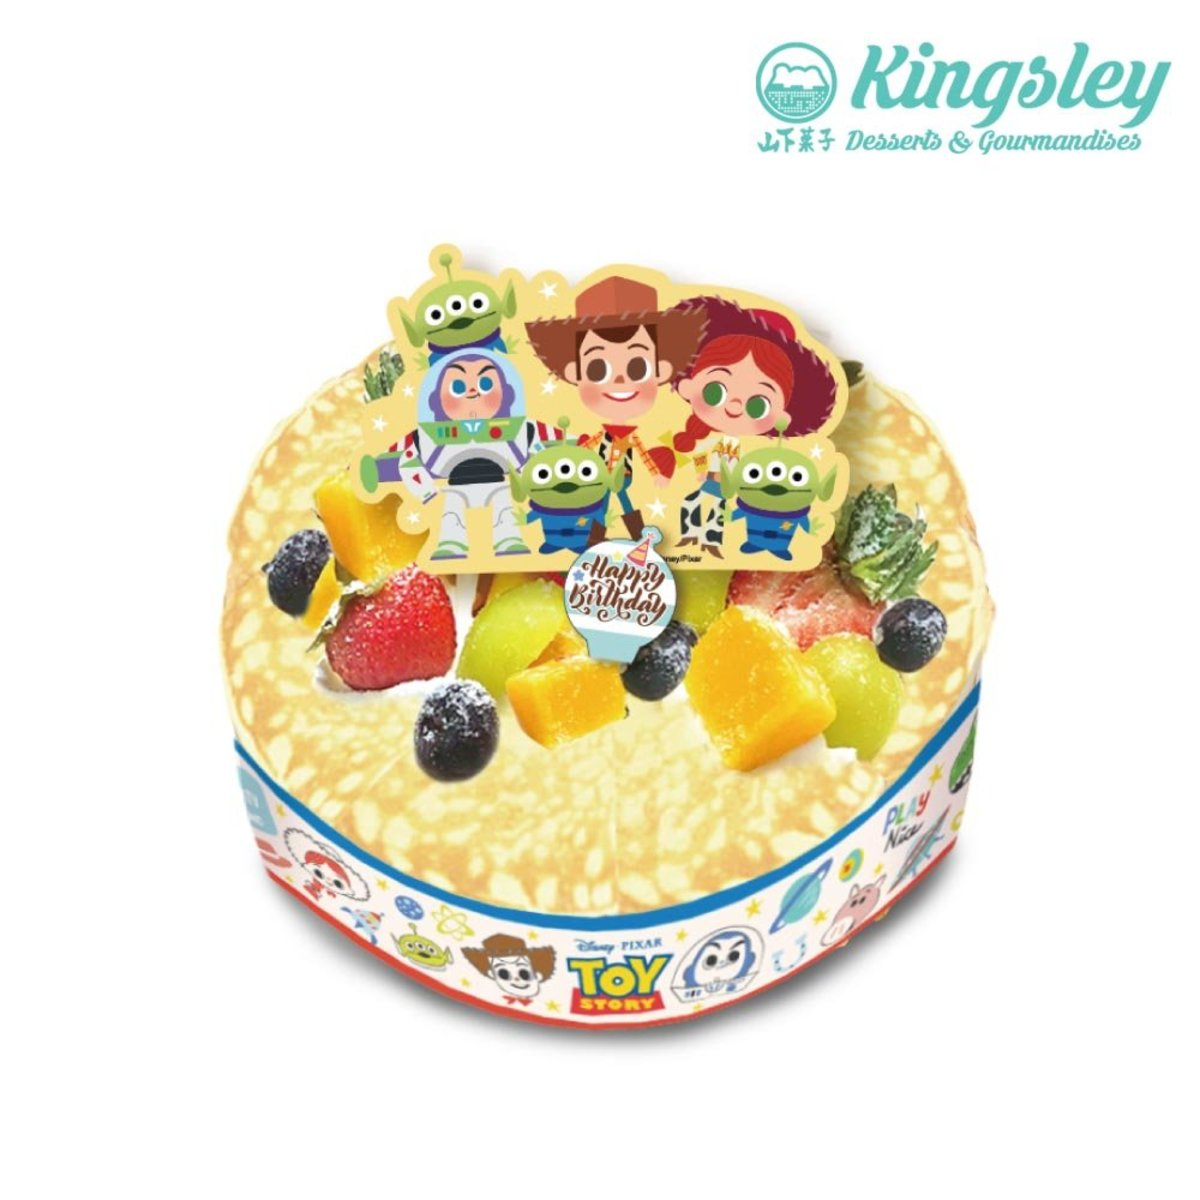 1 Unit - Disney (Whole) Mille Crepe Birthday Cake (Reserve 5 days in advance)